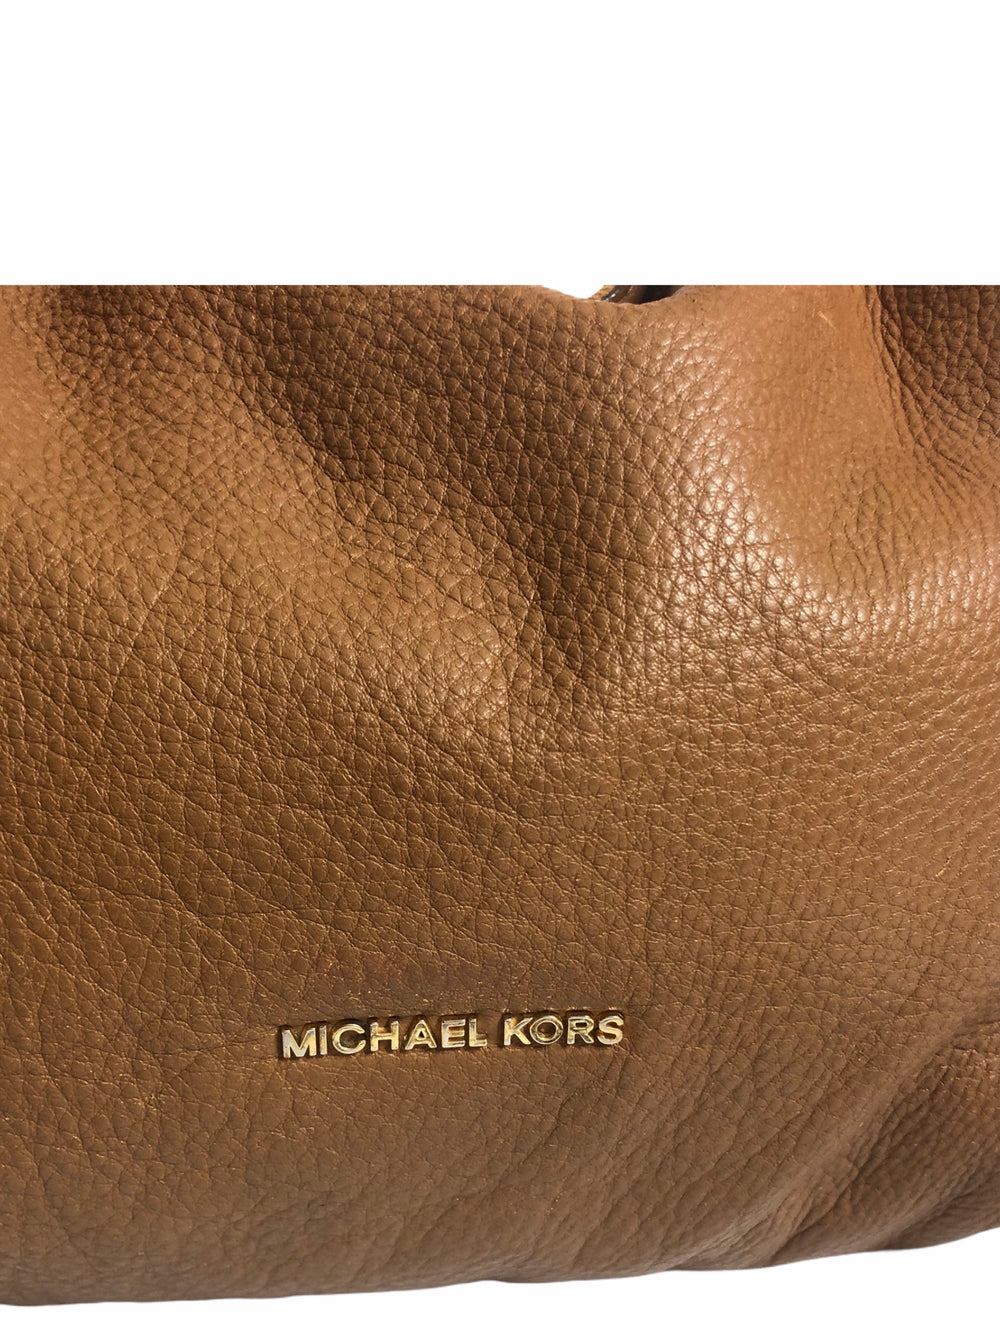 Michael Kors Tan Leather Shoulder Bag - As Seen on Instagram 19/11/20